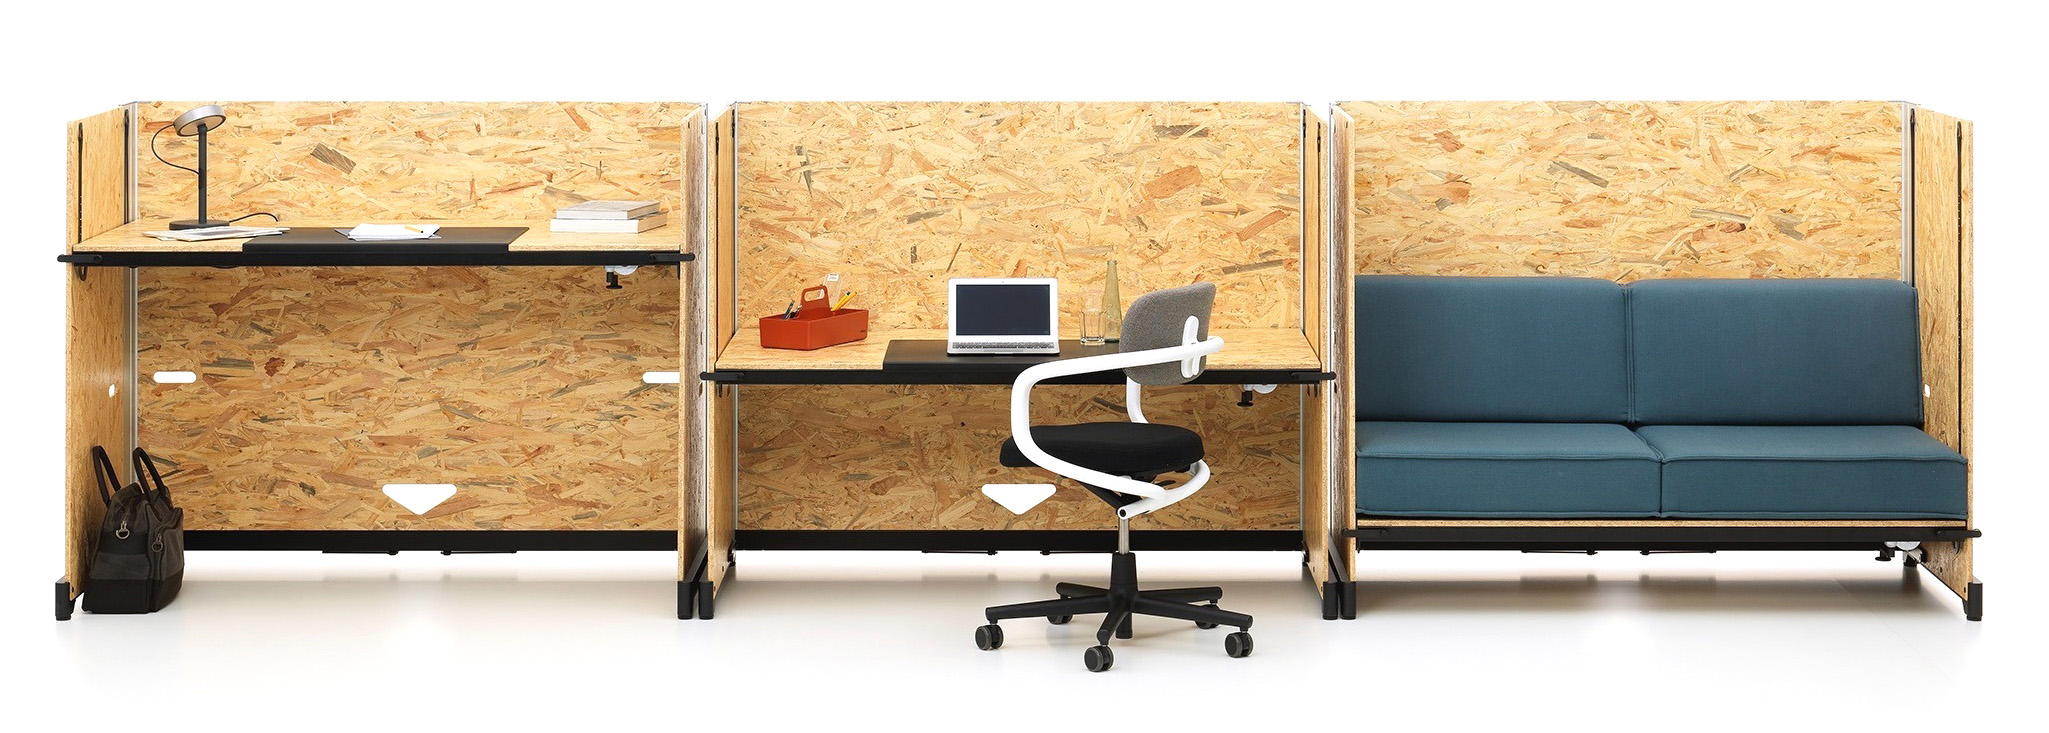 Contemporary Office Equipment For Companies Or Home Office Office Equipment Tips From Ergonomic Office Chairs To Expert Lighting Design Designer Furniture By Smow Com